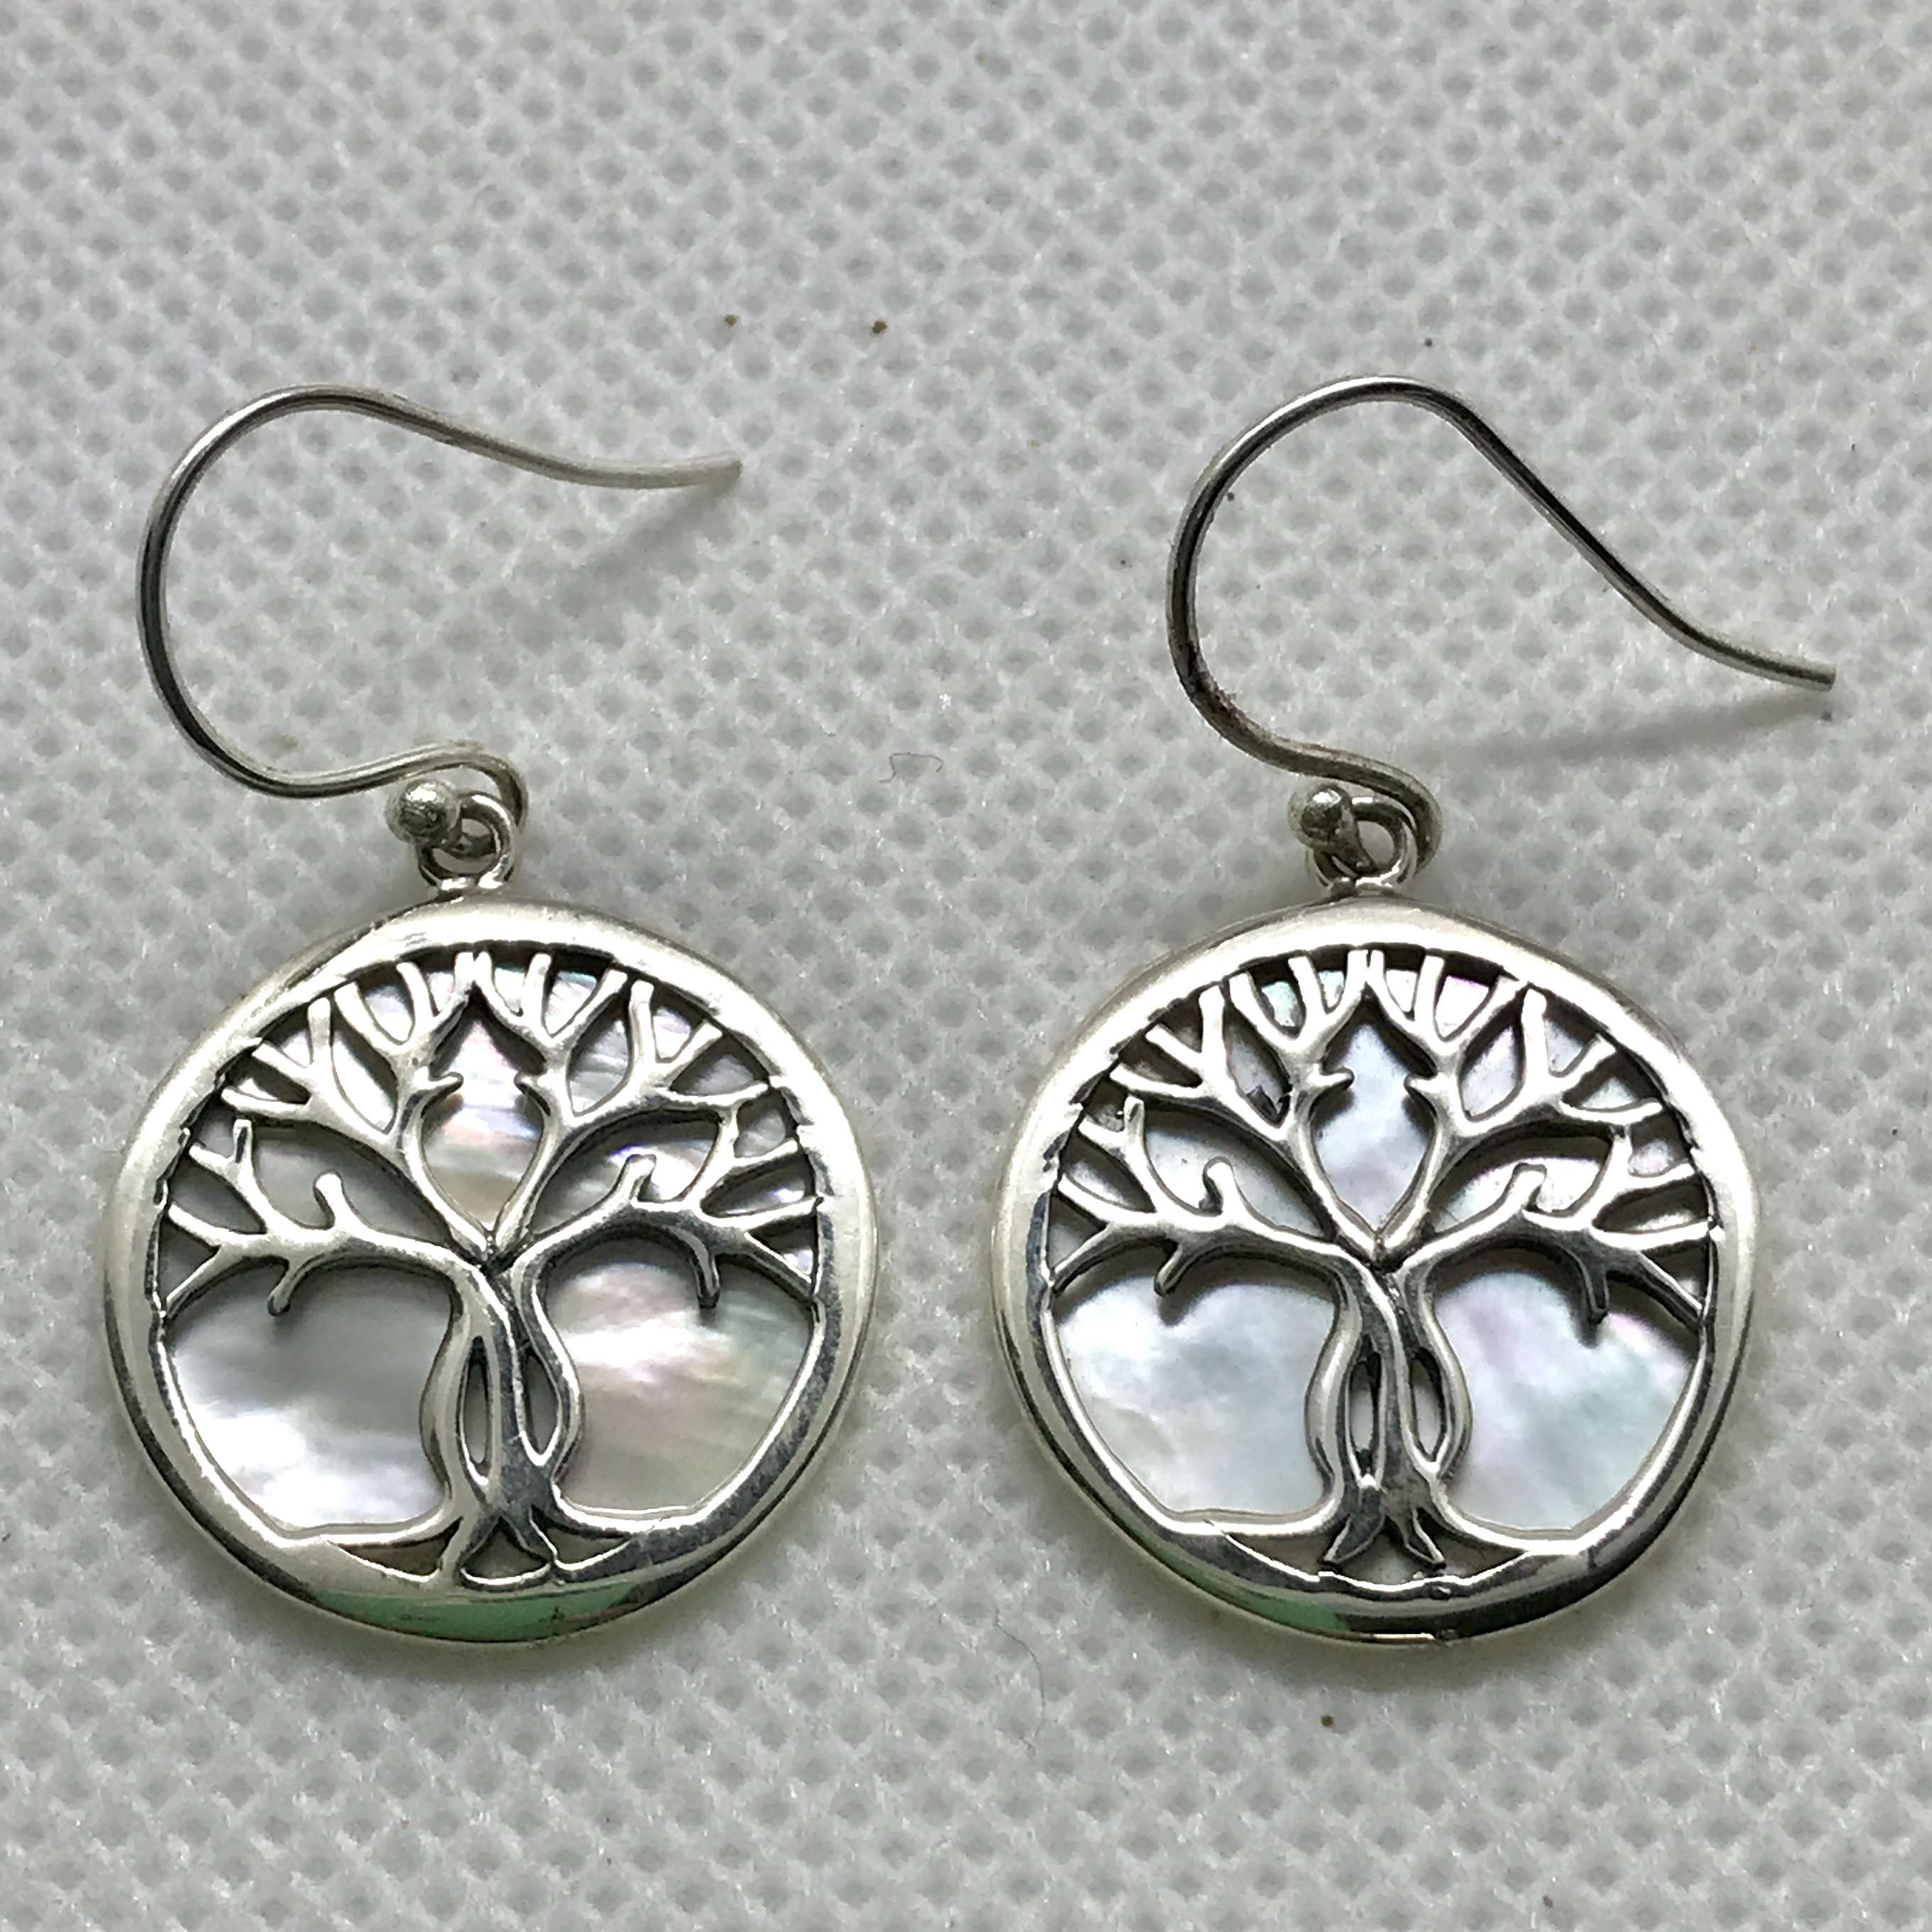 (BALI 925 STERLING SILVER TREE OF LIFE EARRINGS WITH MOP)